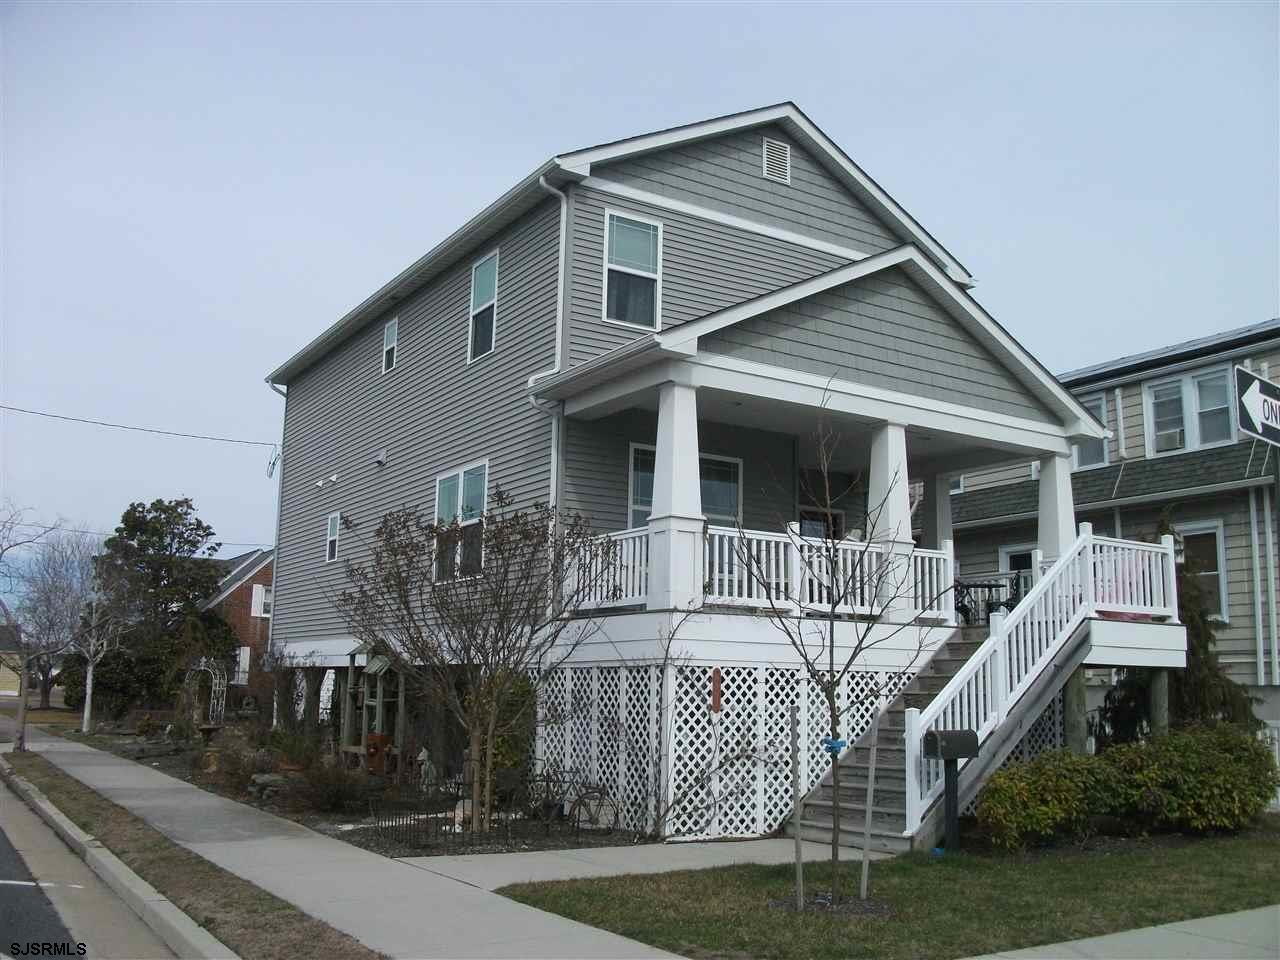 Full summer rental! This 4 bedroom, 1 and 1/2 bath home also features an enclosed outside shower with hot and cold water. The front porch and rear sitting areas offer relaxing times outdoors. Enjoy all the shore has to offer. Have a great summer.